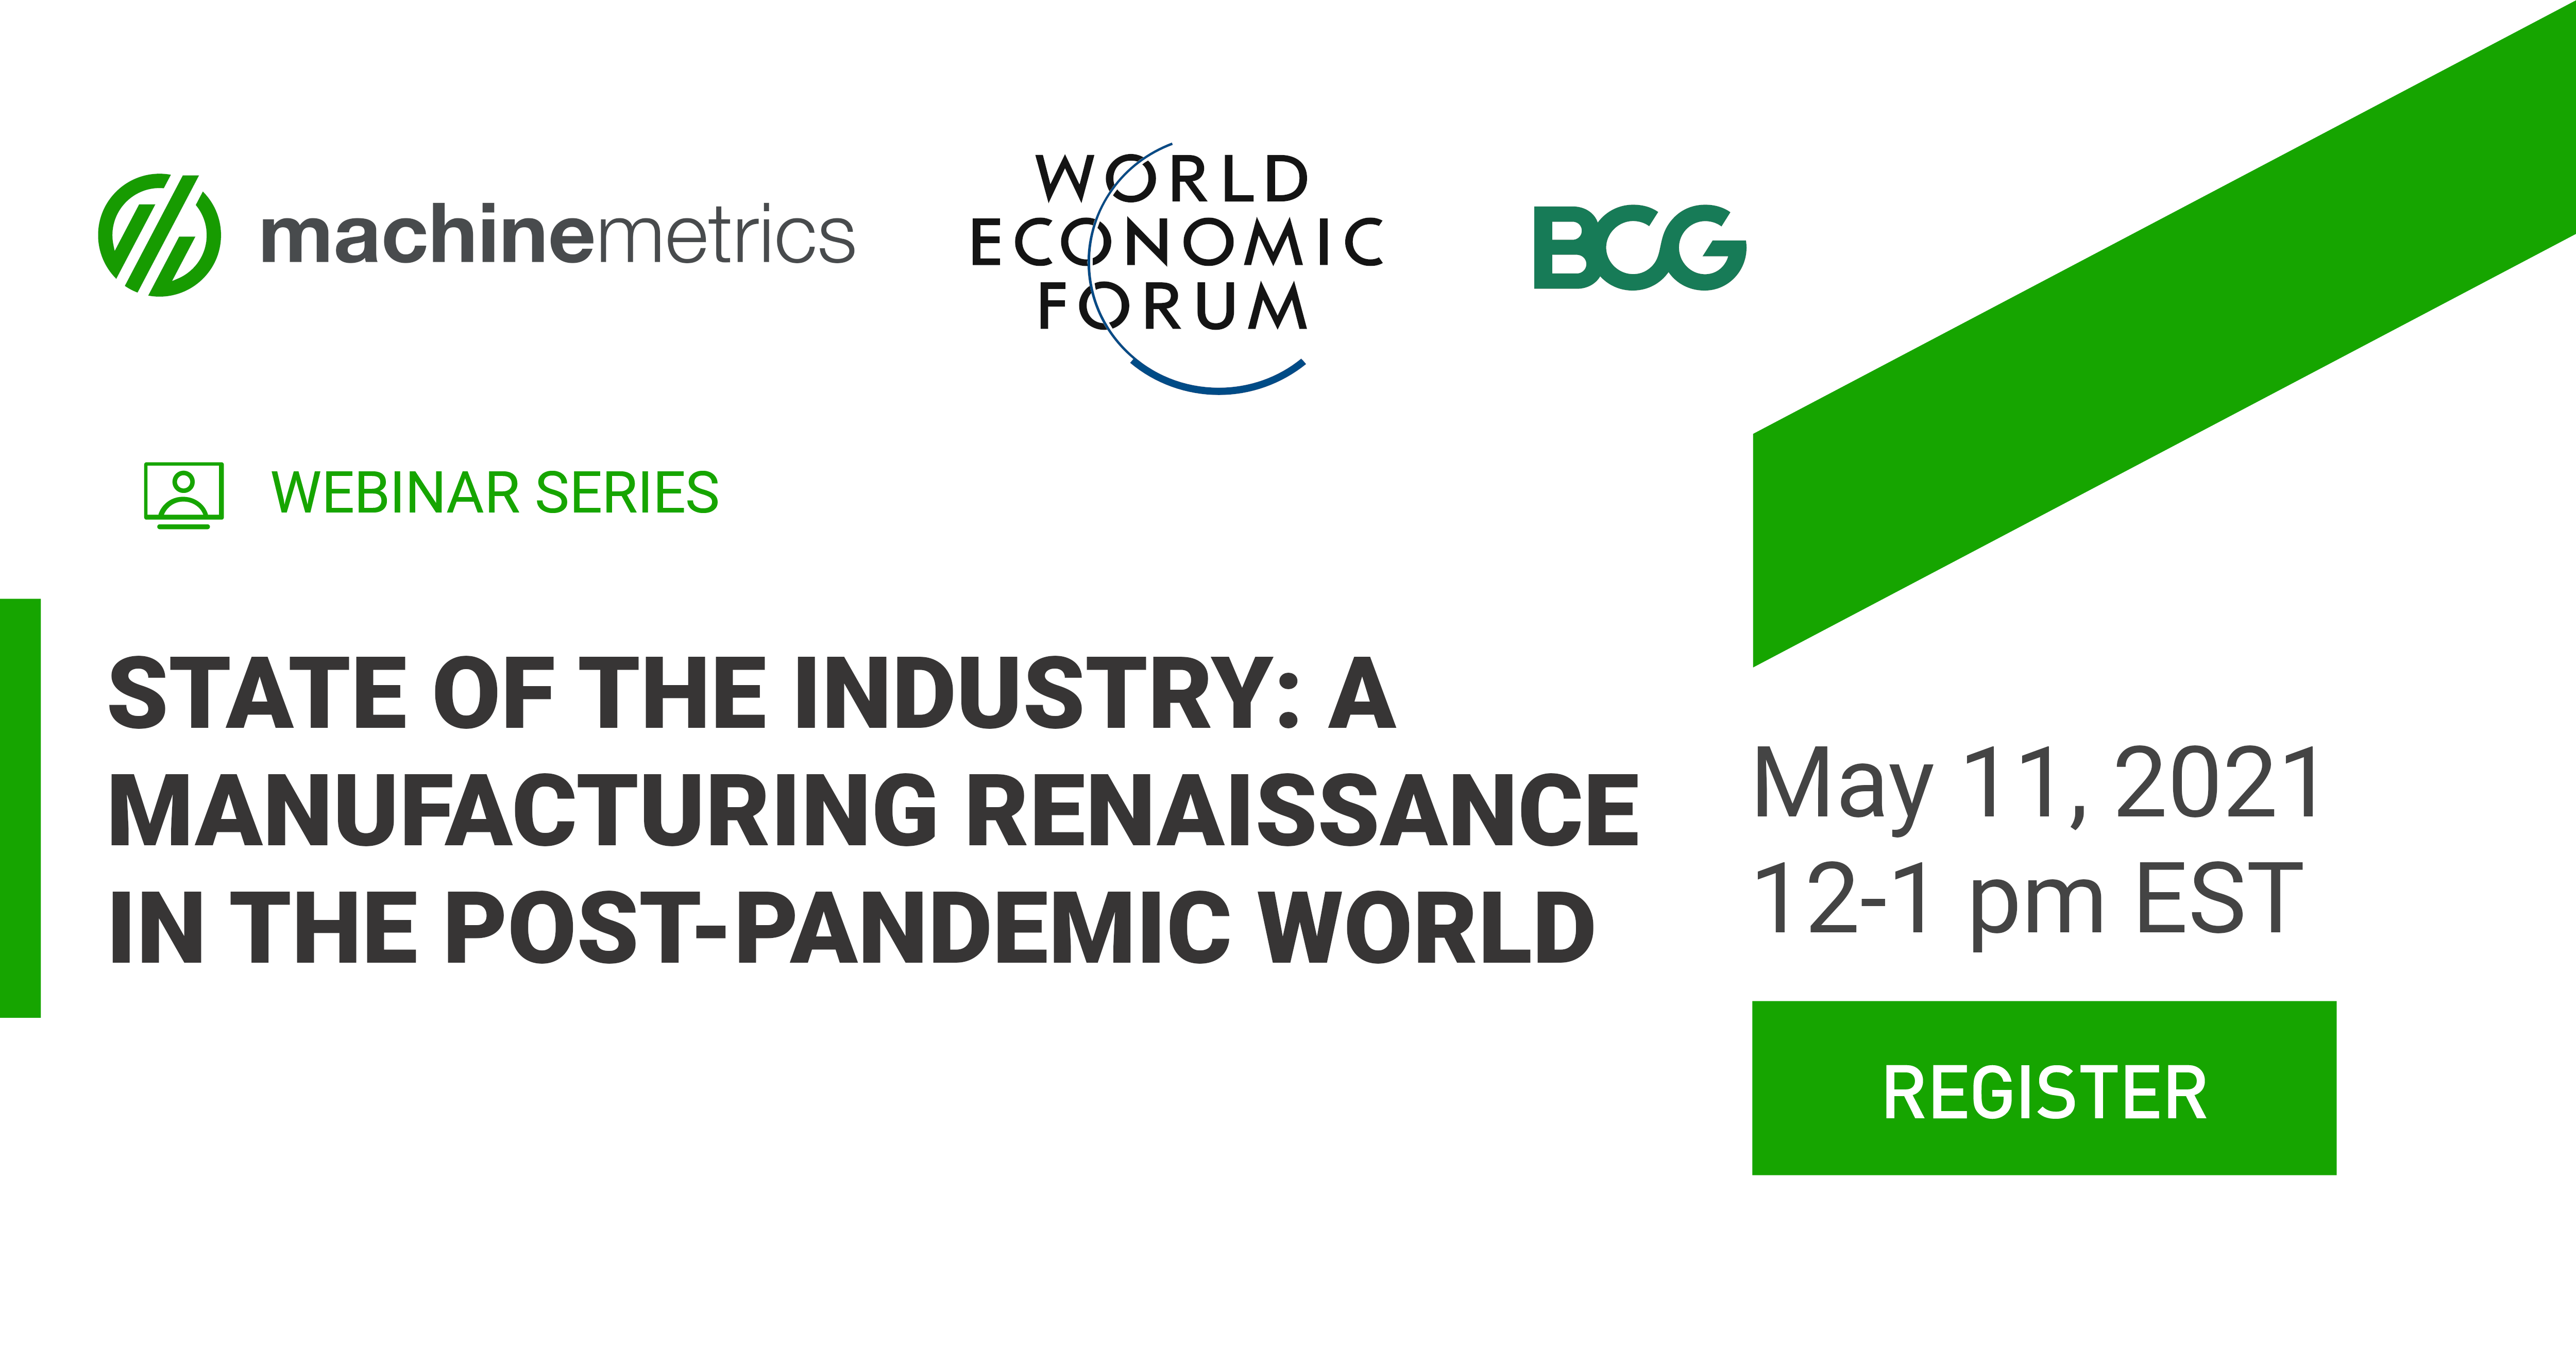 State of the Industry: A Manufacturing Renaissance in the Post-Pandemic World